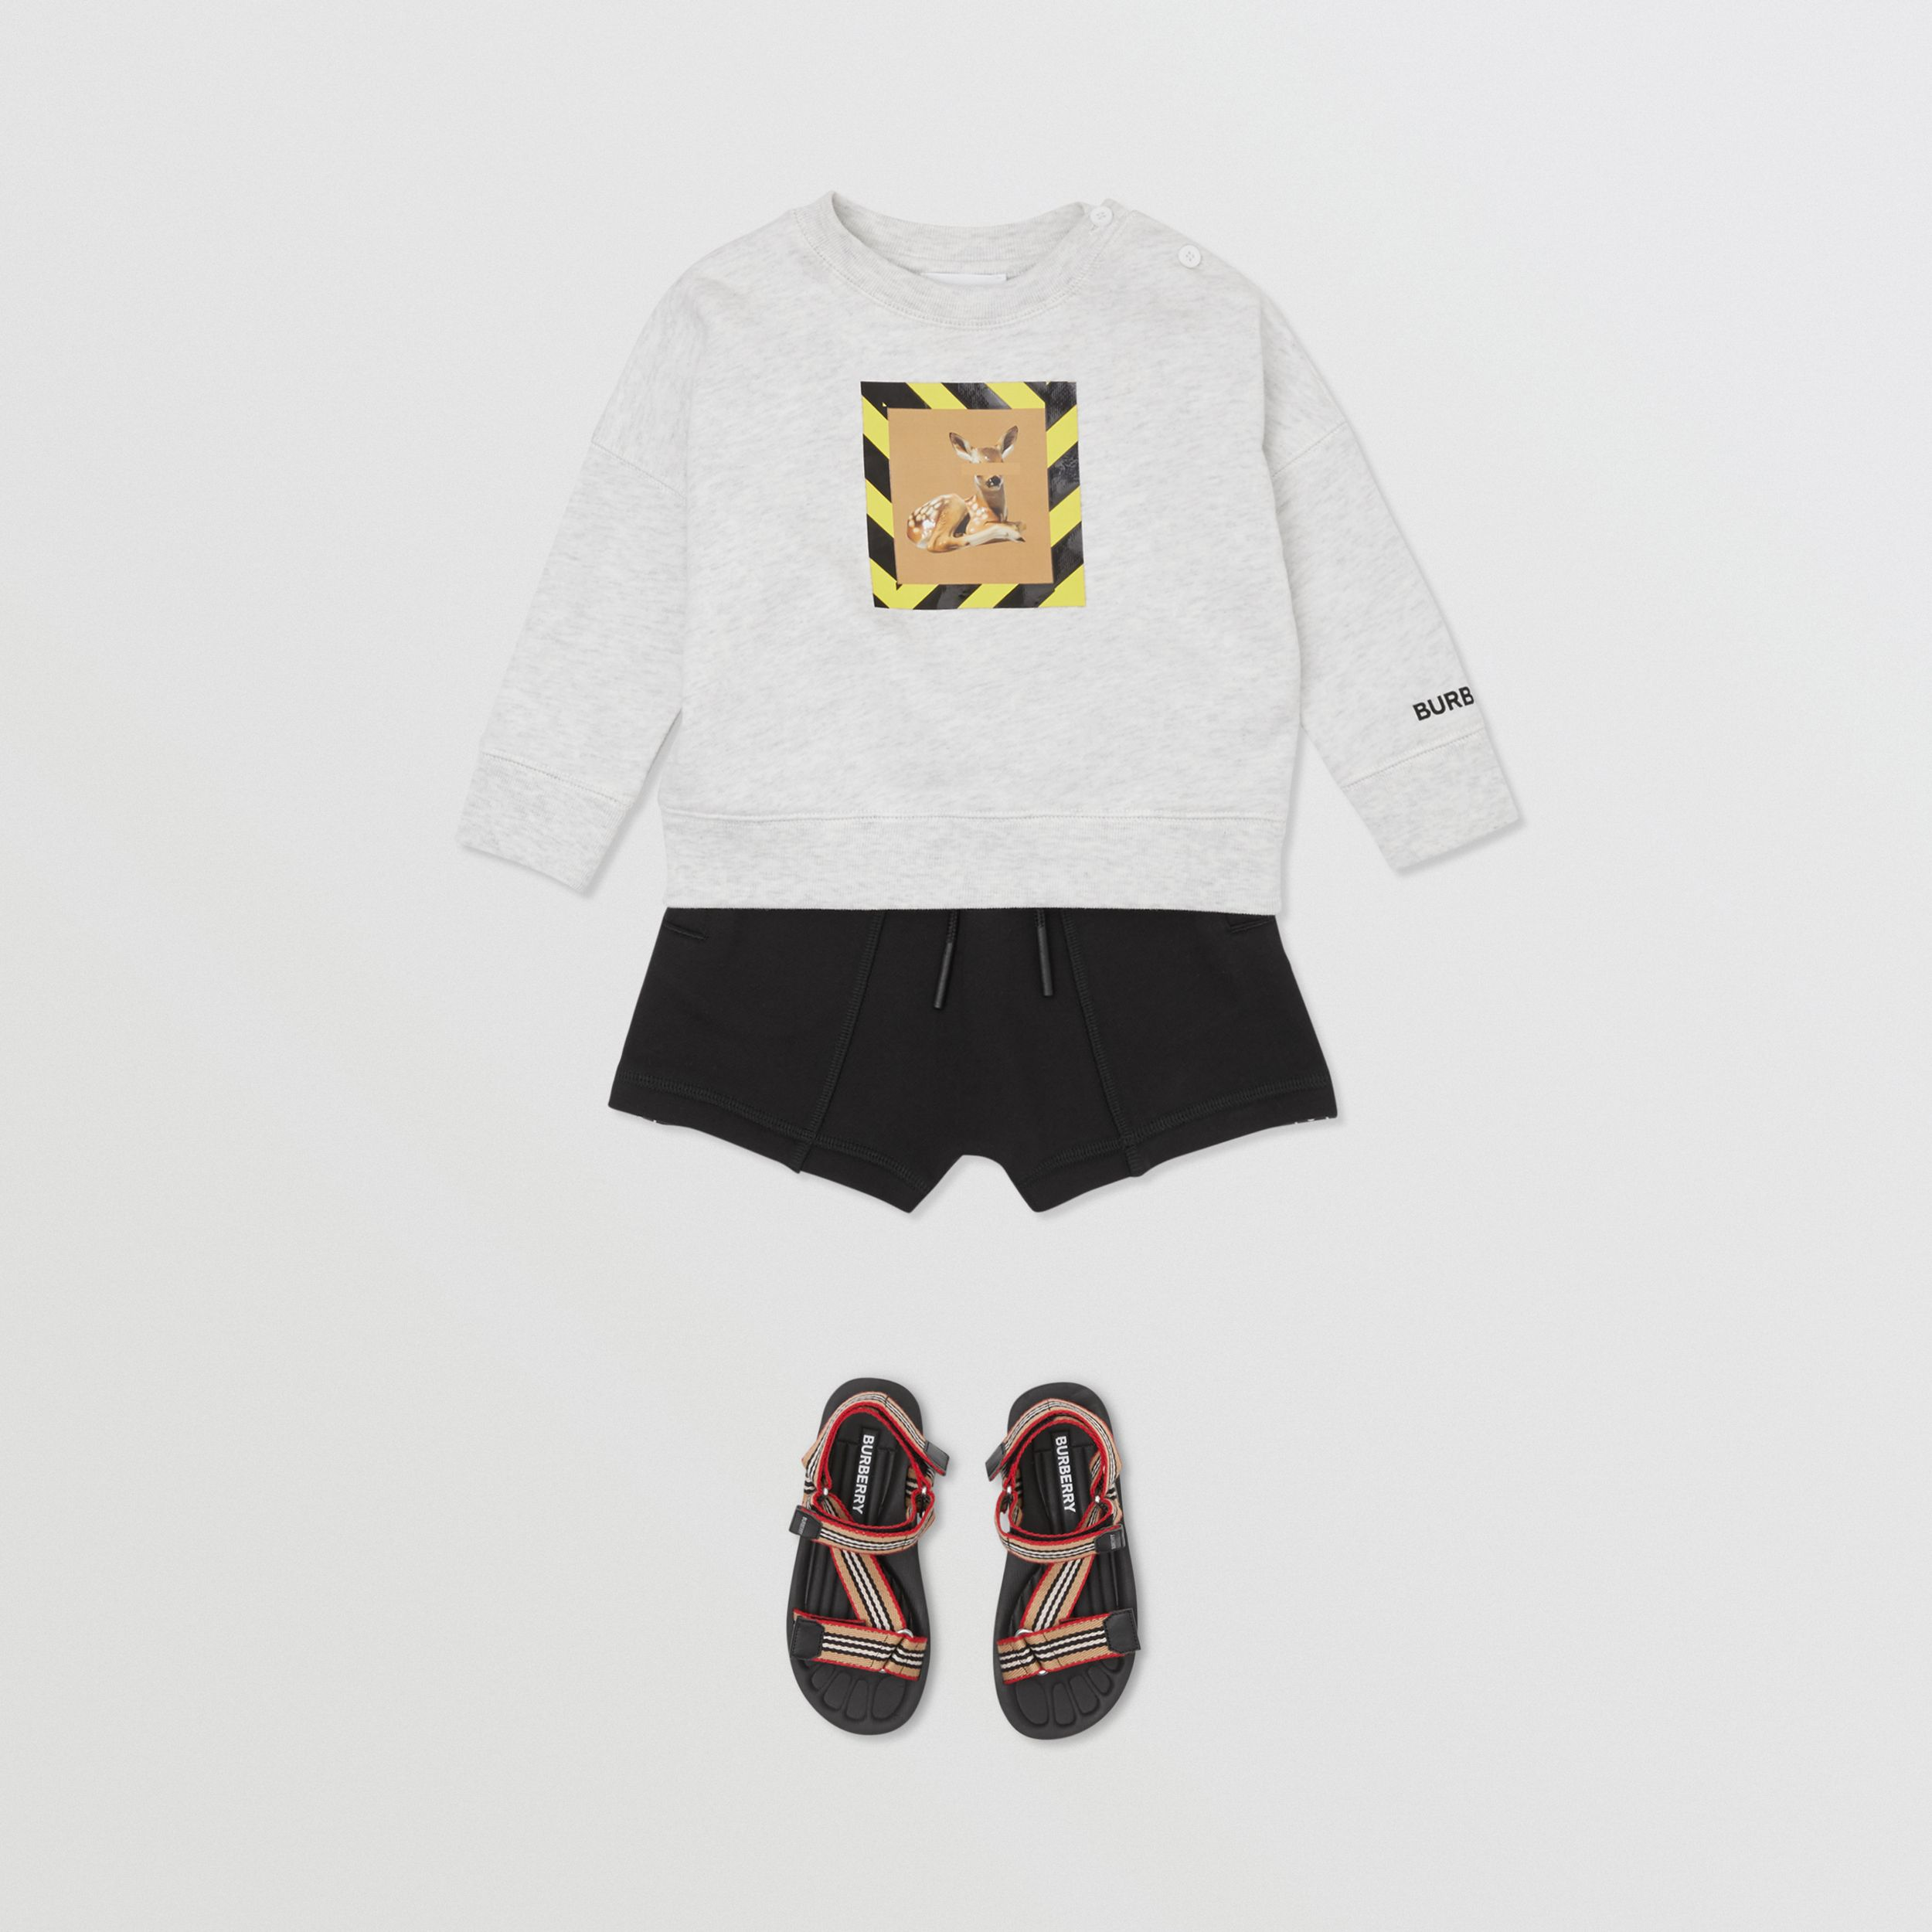 Deer Print Cotton Sweatshirt in White Melange - Children | Burberry - 4